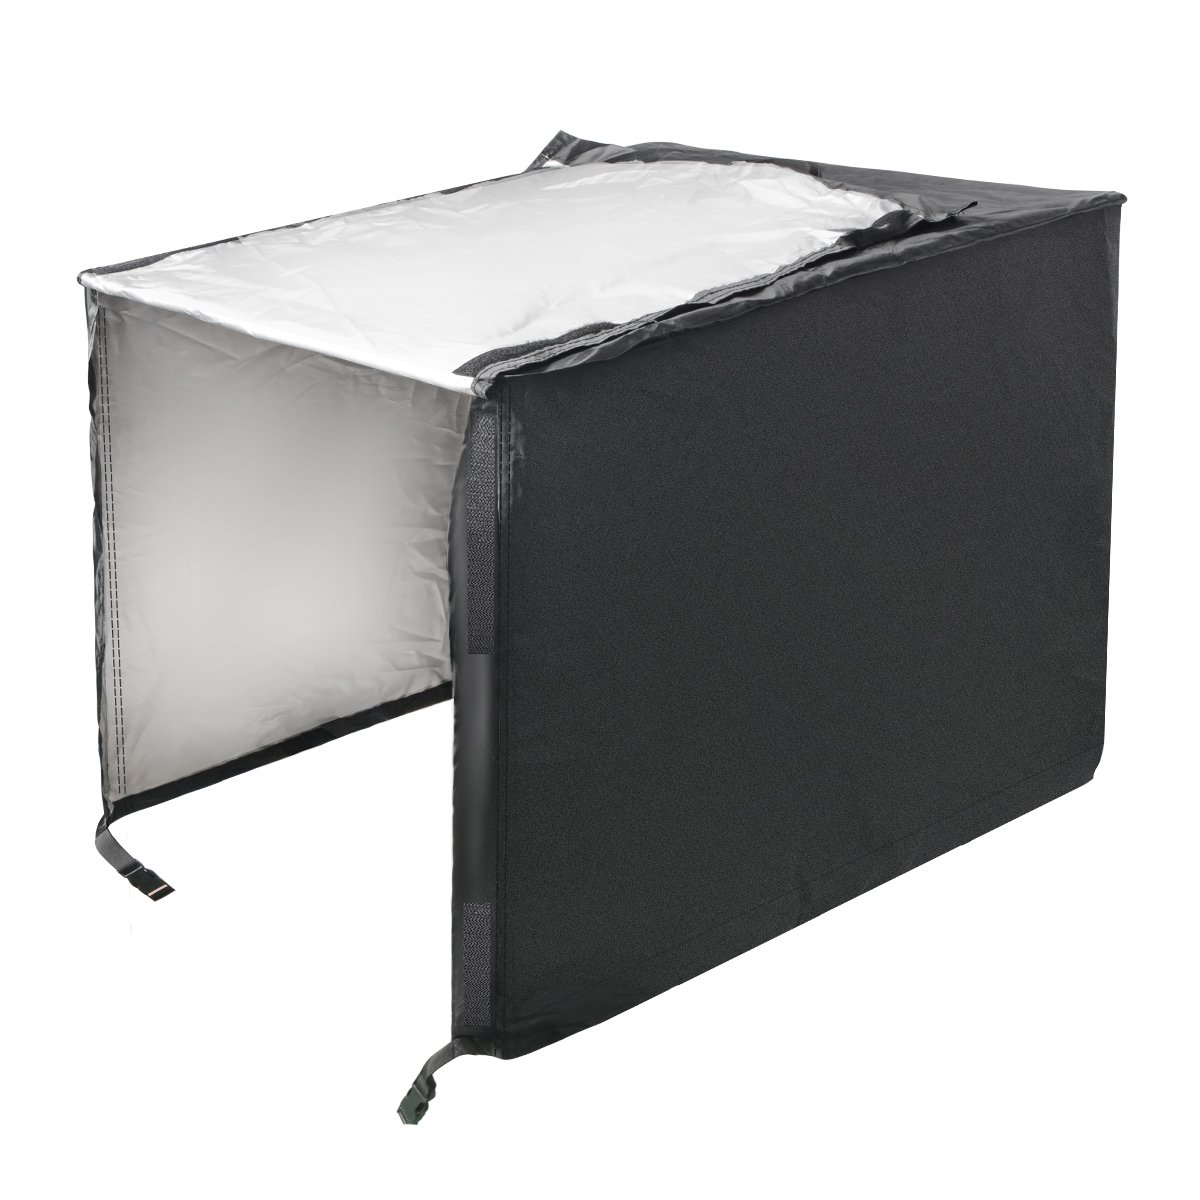 Penck Waterproof UV Resistant Universal Generator Cover, 210D Oxford Fabric Black(For generators up to 38''(L) x28(W) x30(H))